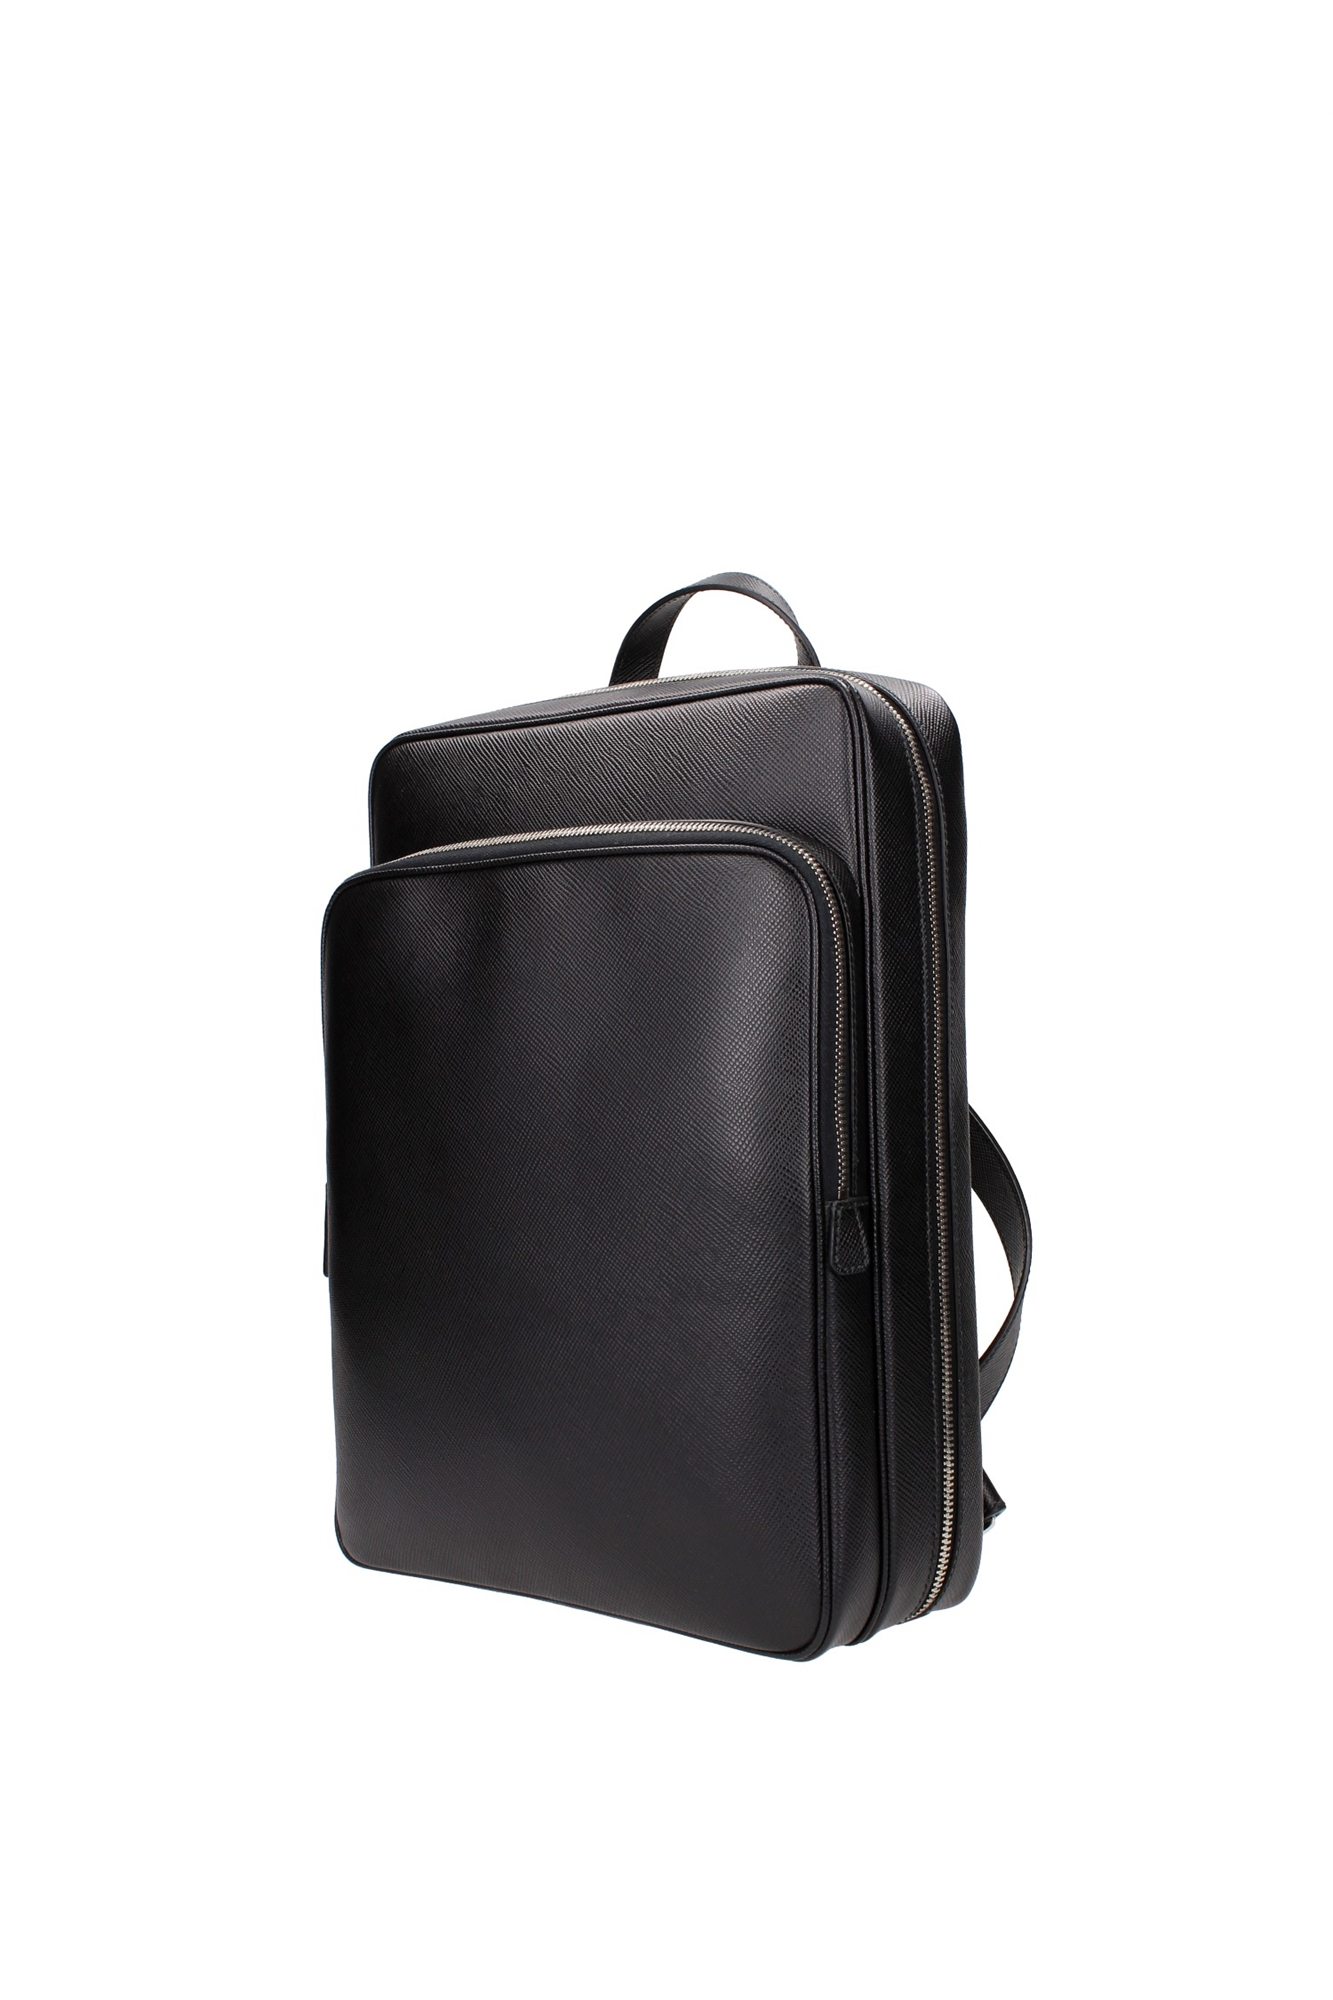 Bags Backpack Prada Men Leather Black VZ0063NEROSAFFIANO